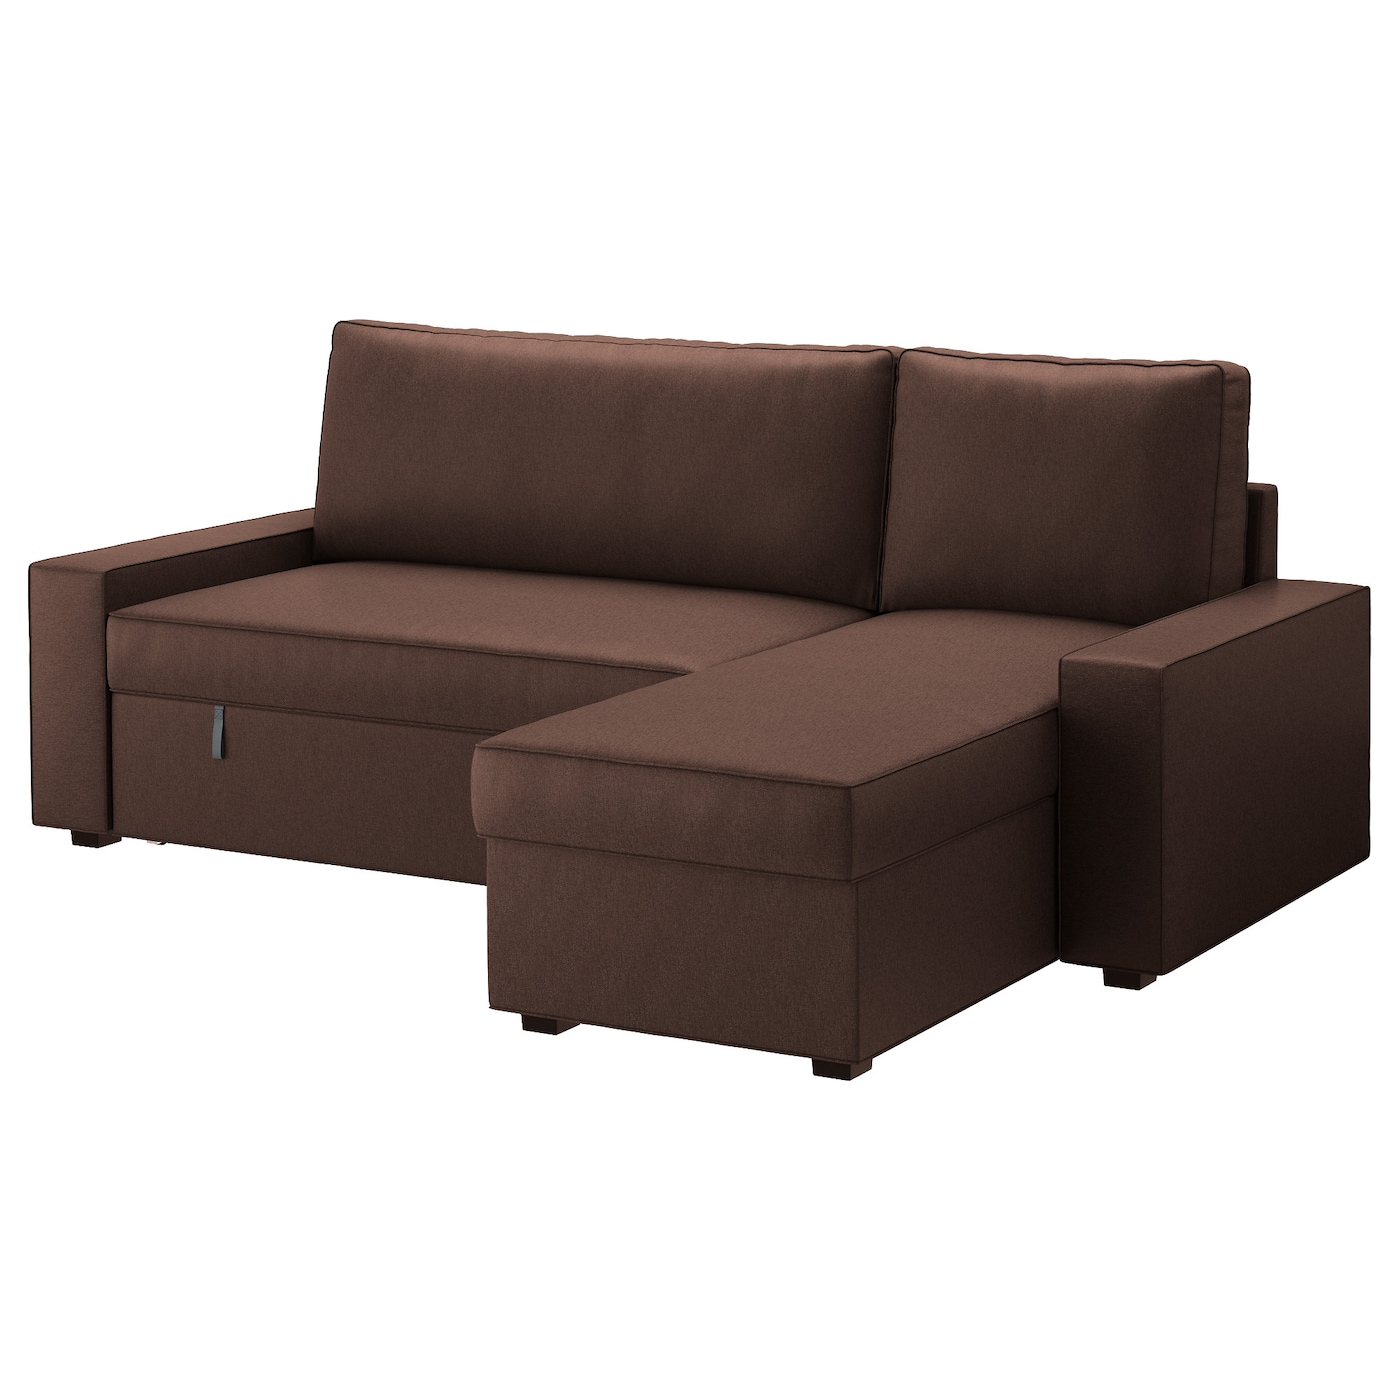 Vilasund sofa bed with chaise longue borred dark brown ikea for Sofas de 4 plazas baratos